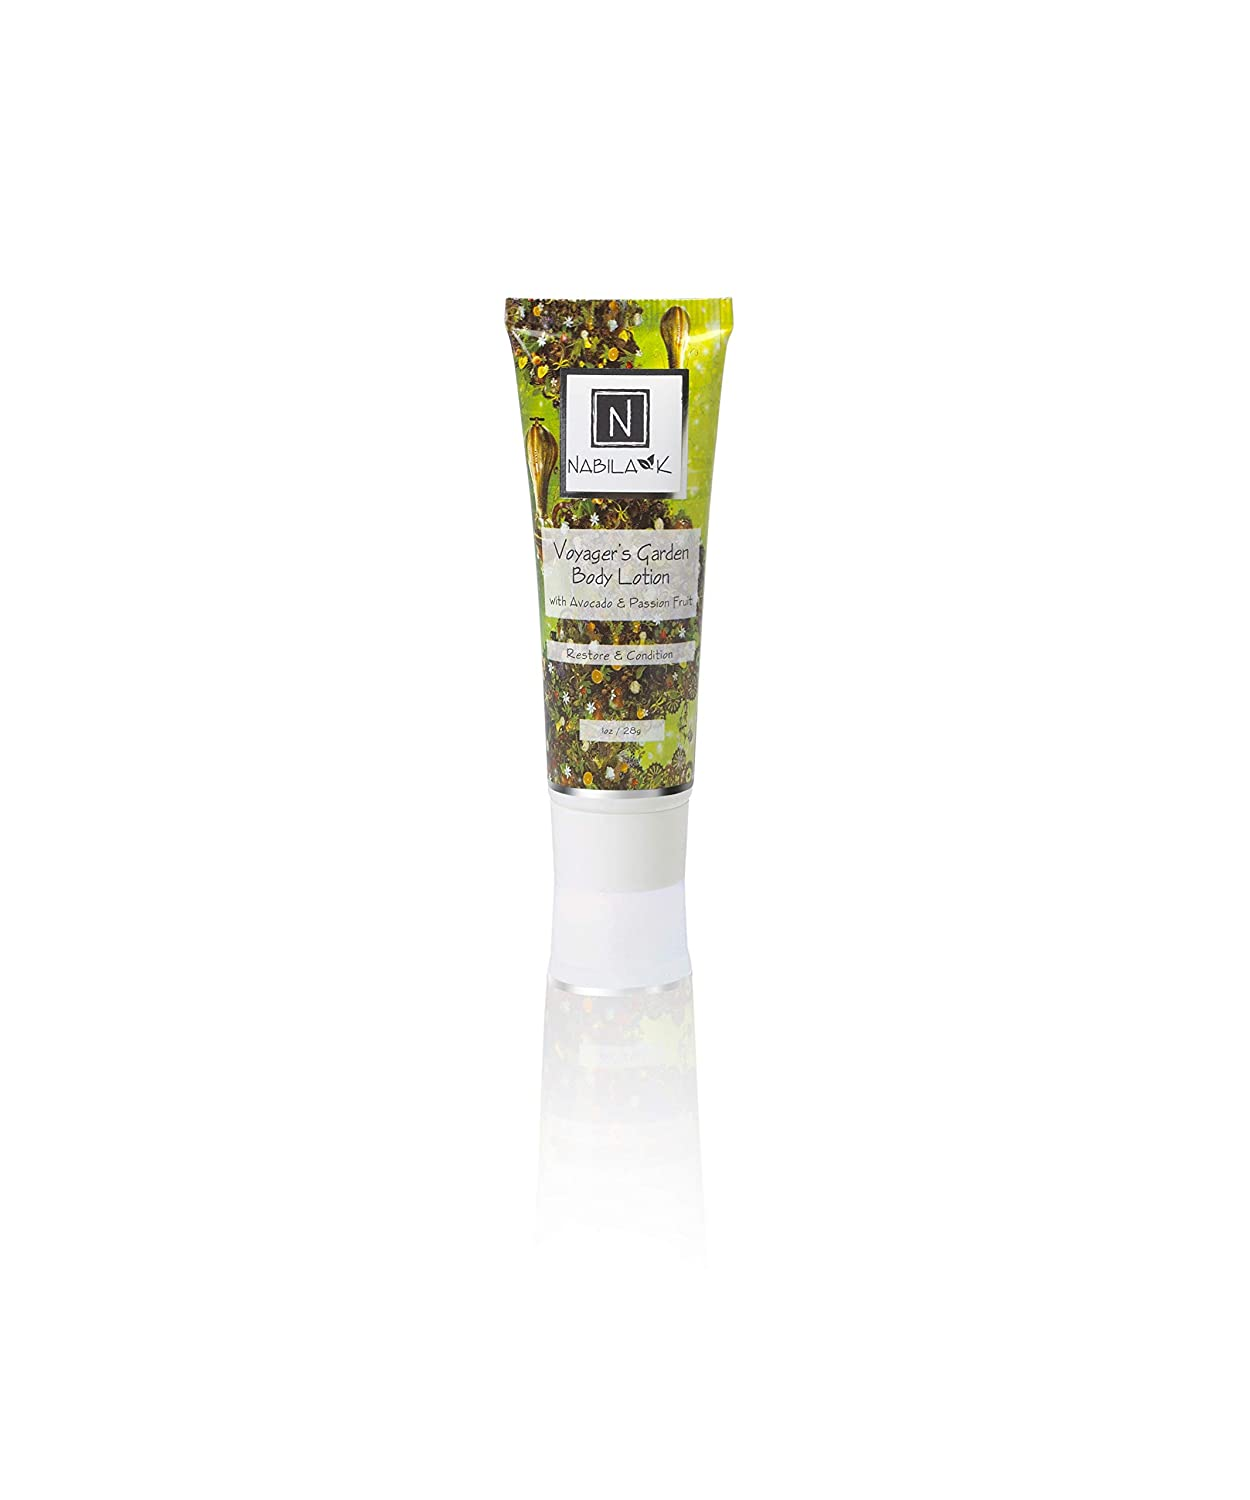 N Nabila K Voyager's Garden Body Lotion for Dry Skin, with Avocado & Passion Fruit, Restore & Condition, Travel Size, 1 oz.